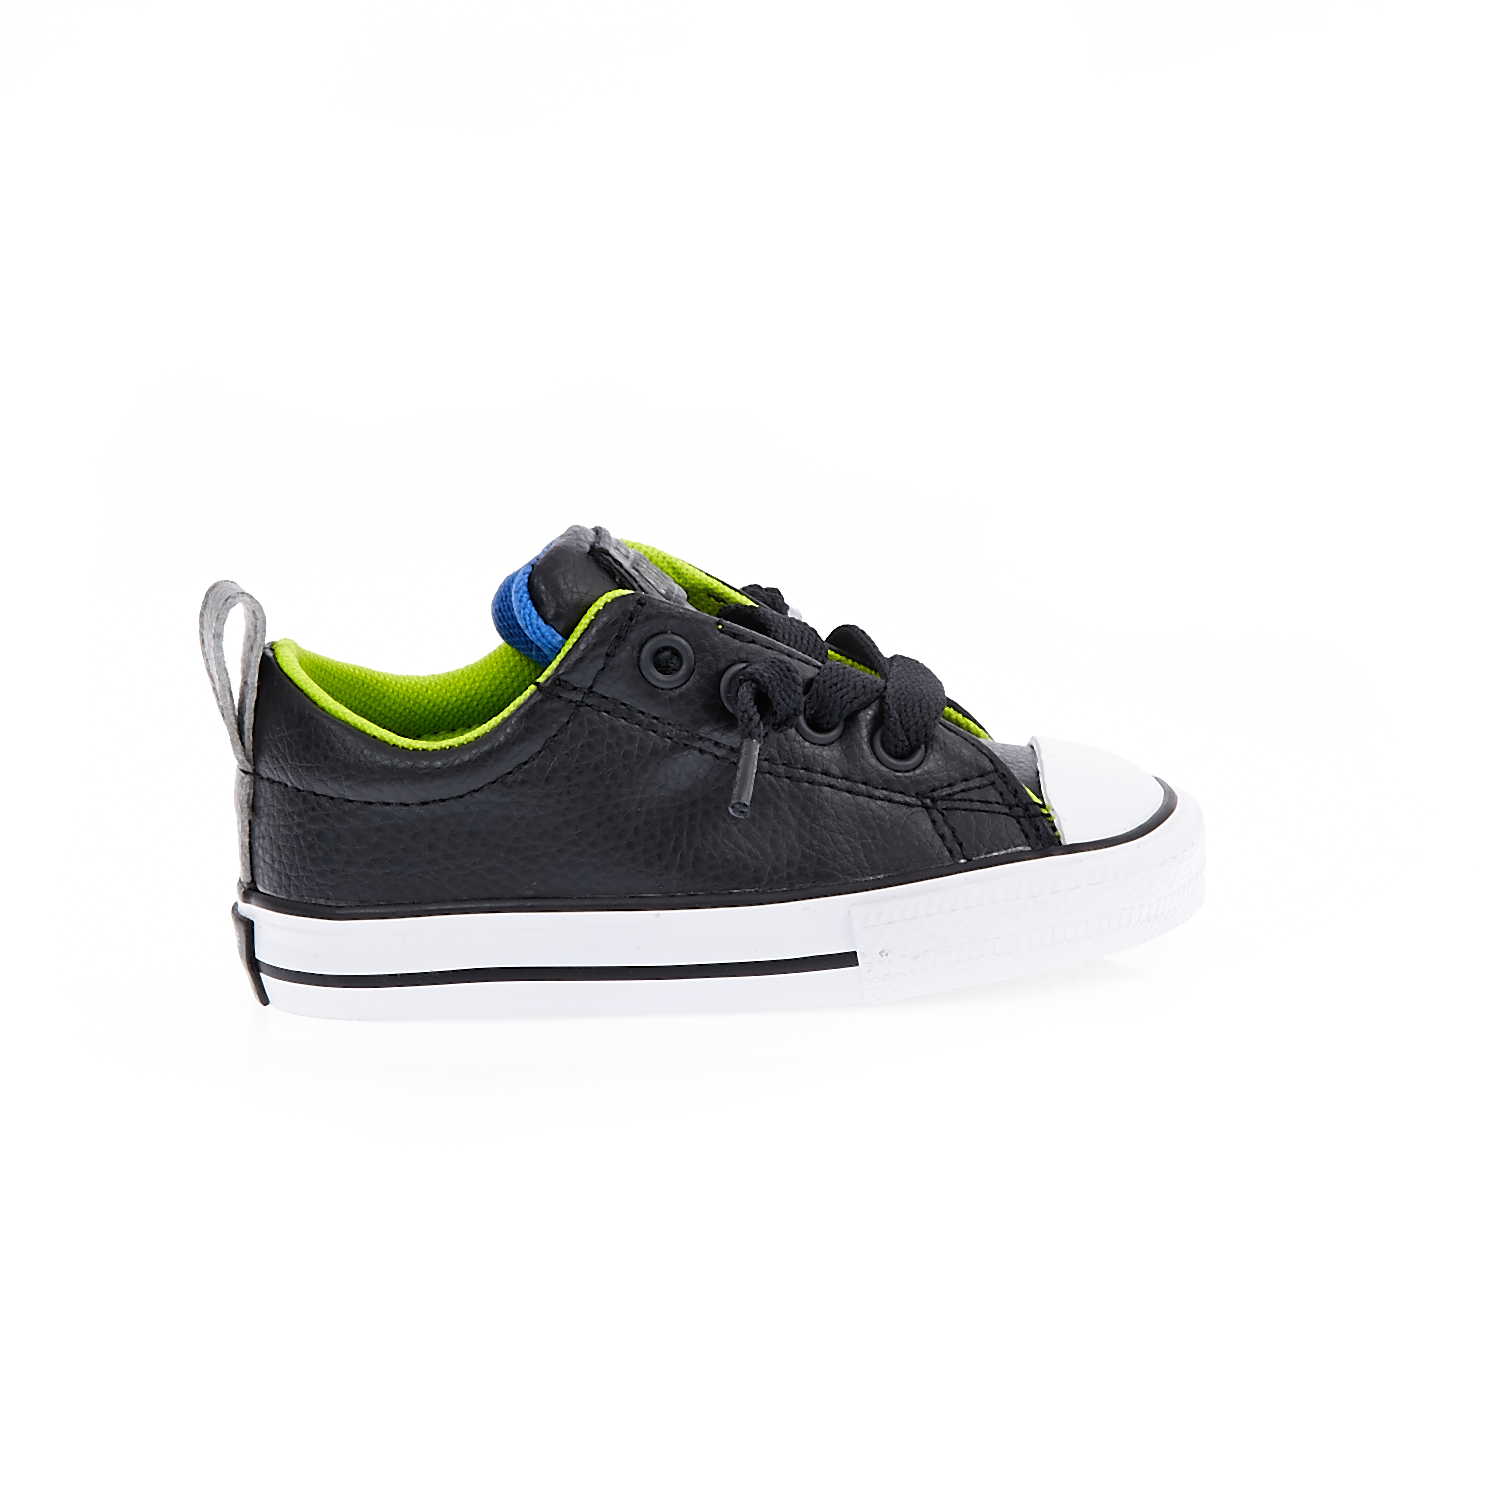 CONVERSE - Βρεφικά παπούτσια Chuck Taylor All Star Street S μαύρα